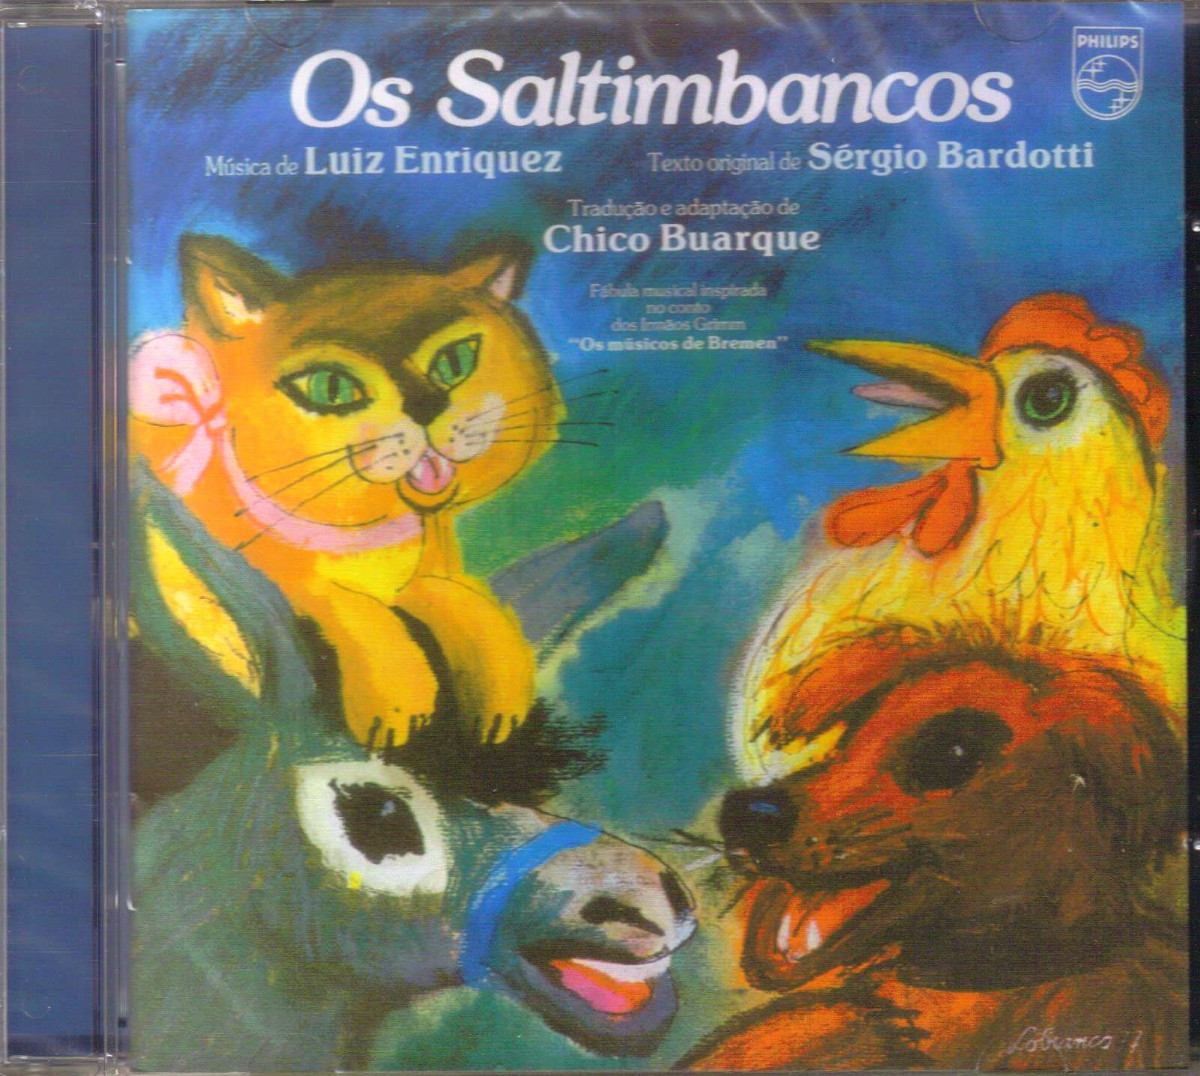 cd os saltimbancos chico buarque